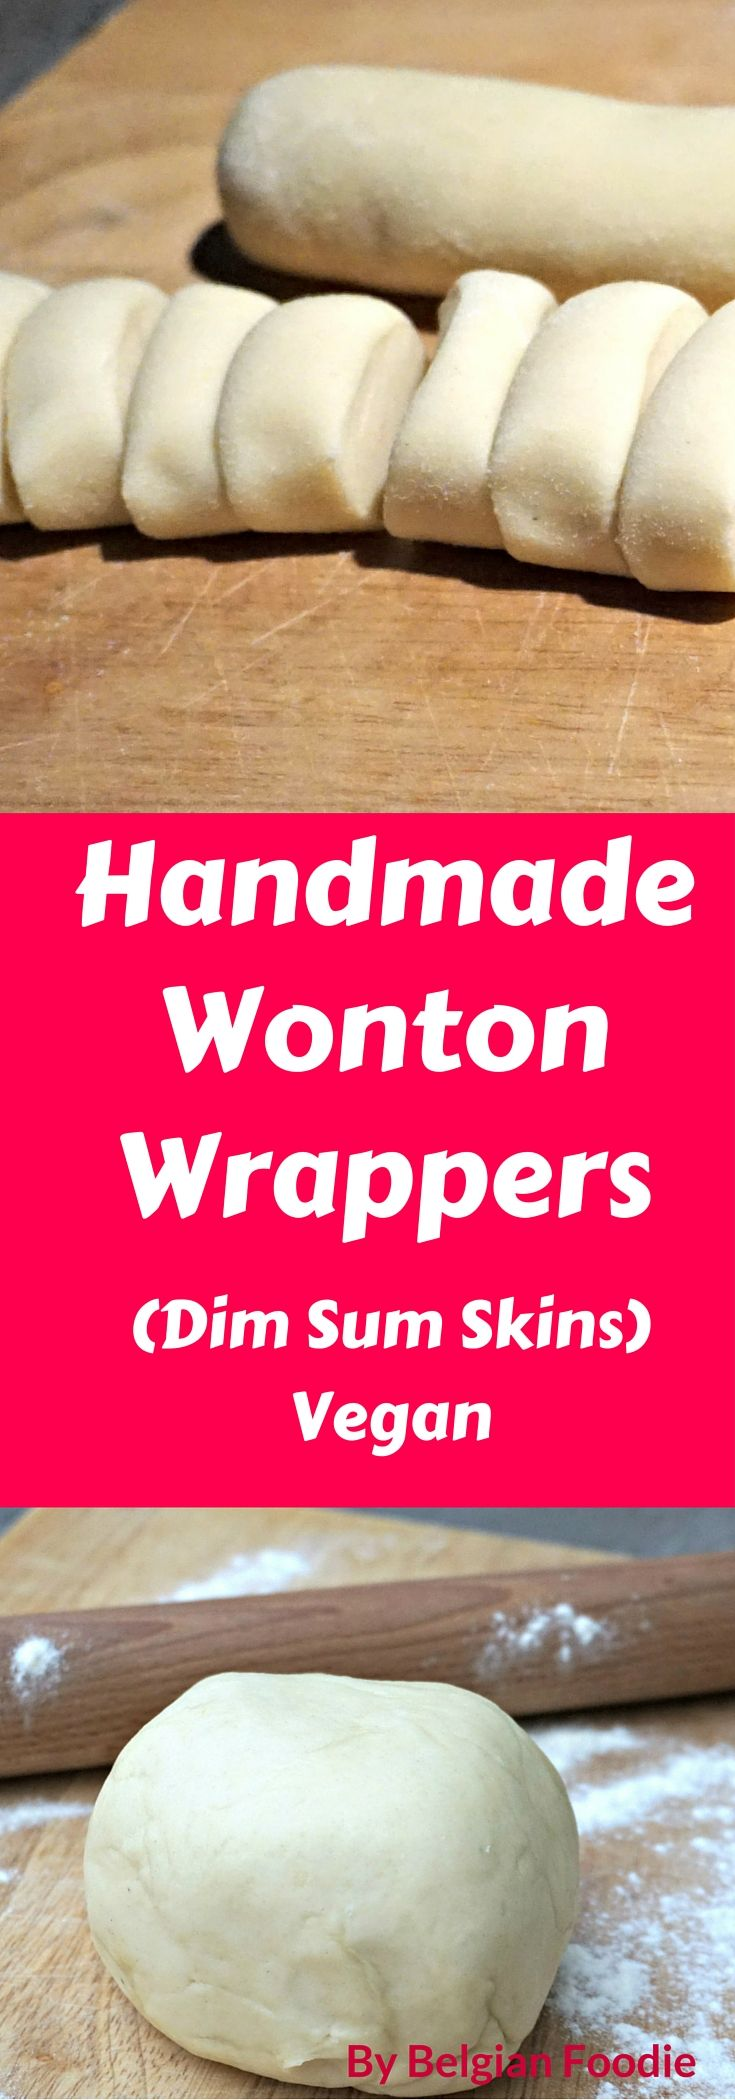 Learn How and Why to Make your own Handmade Wonton Wrappers #wonton #dimsum #gyoza #vegan #vegetarian #homemade #easyrecipes #belgianfoodie